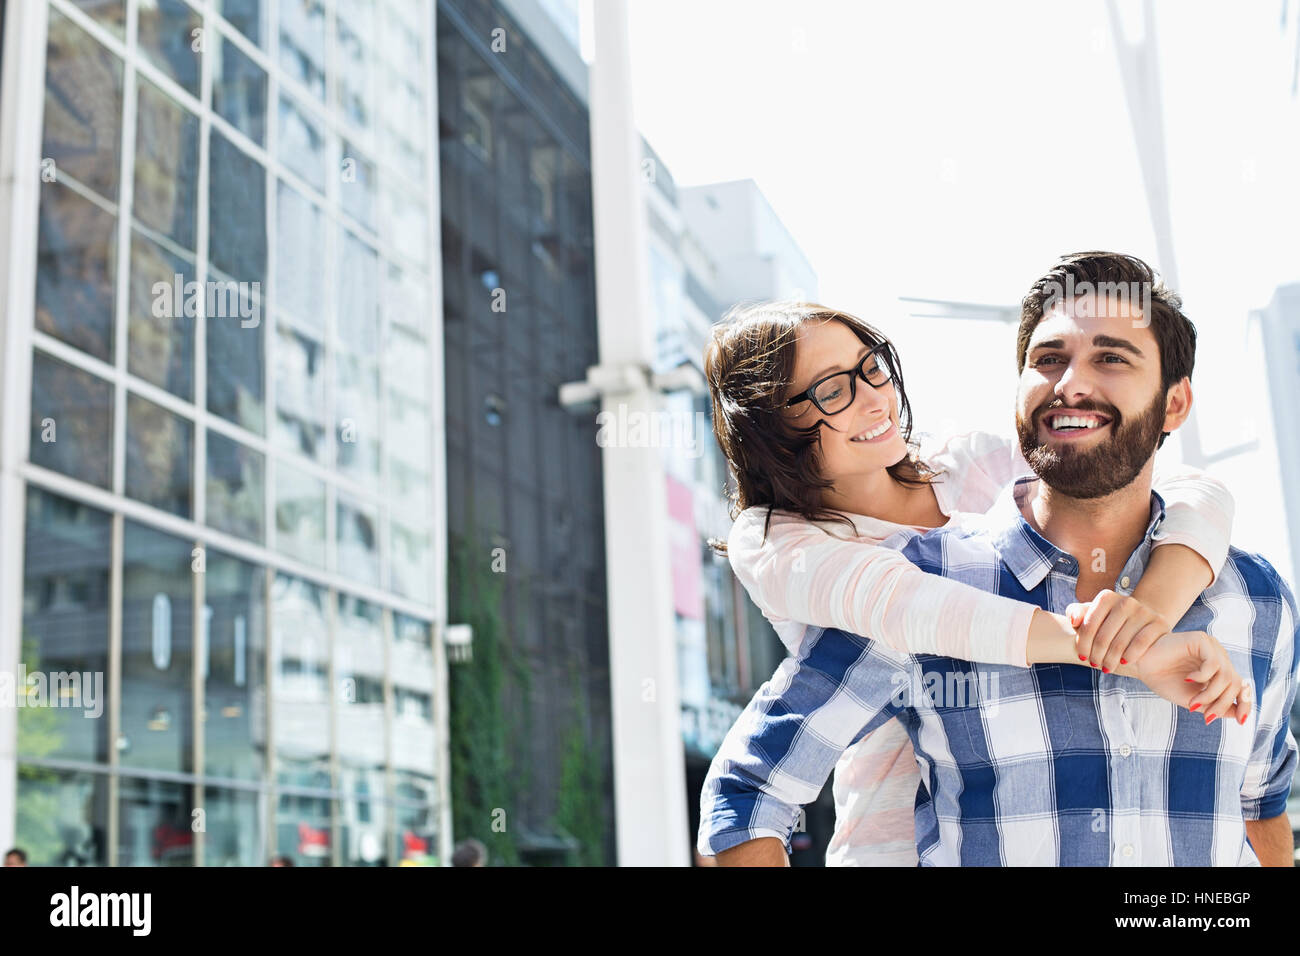 Happy man giving piggyback ride to woman in city Stock Photo